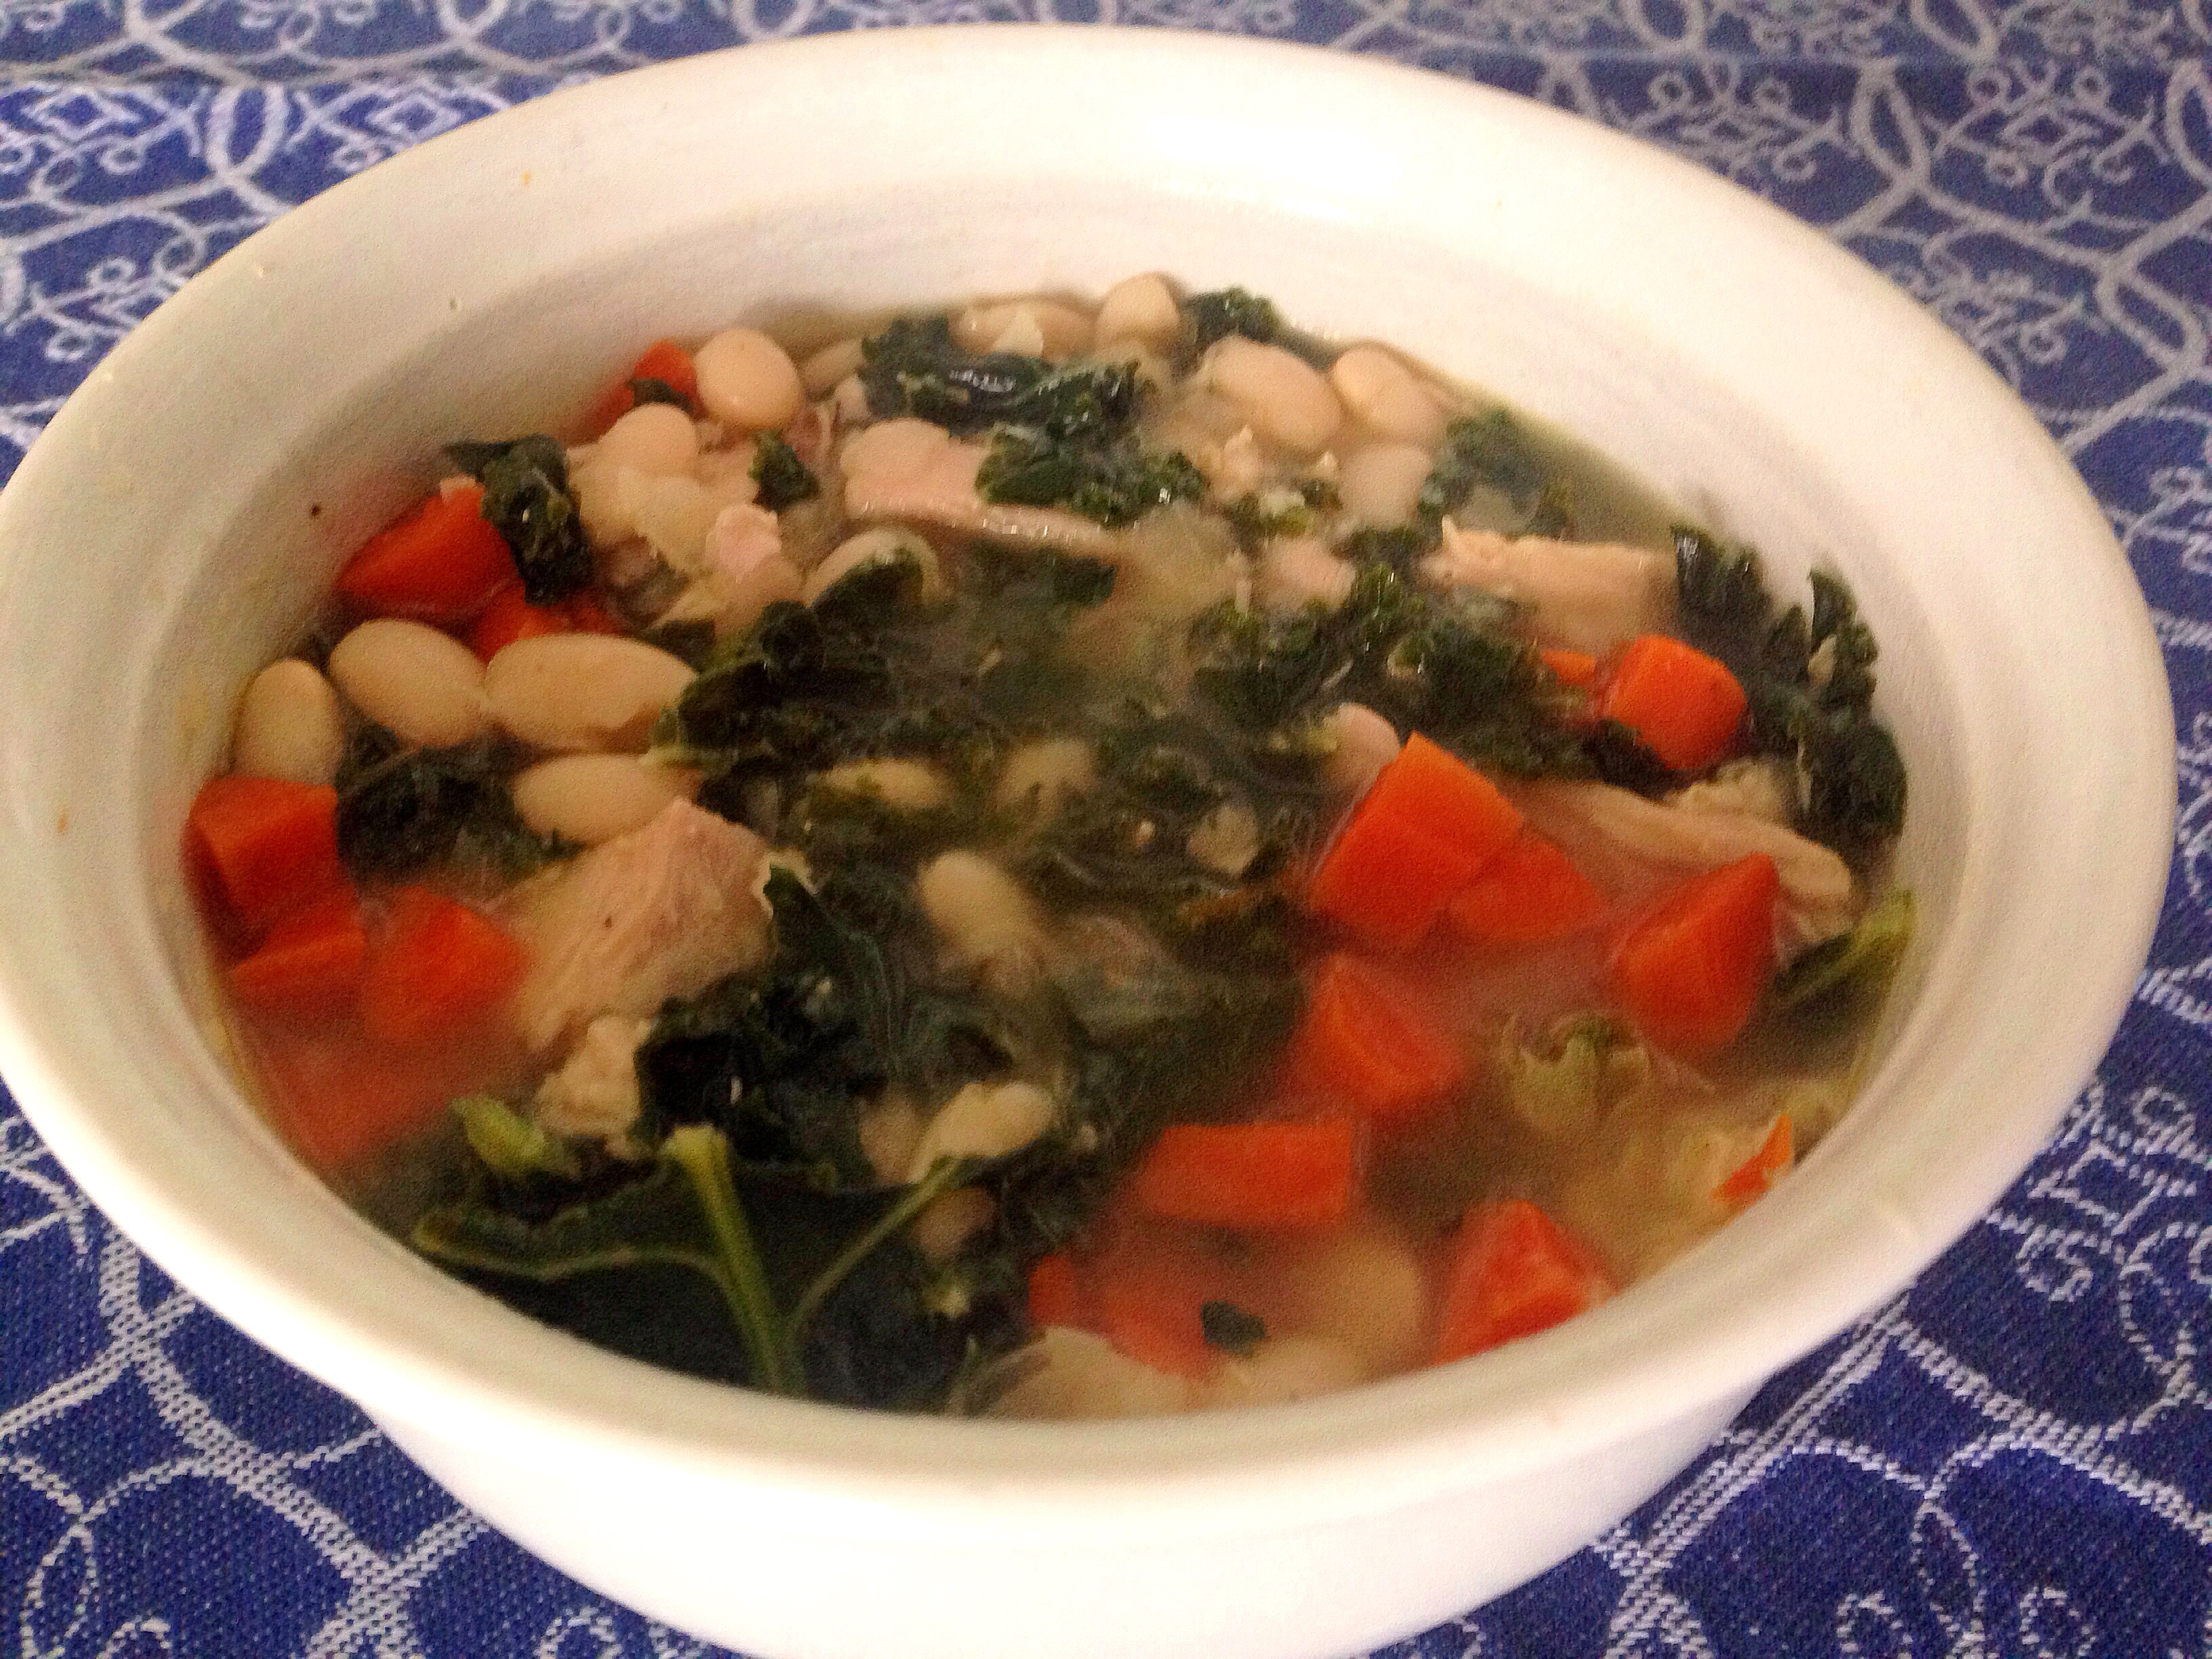 Turkey-White Bean Soup with Kale